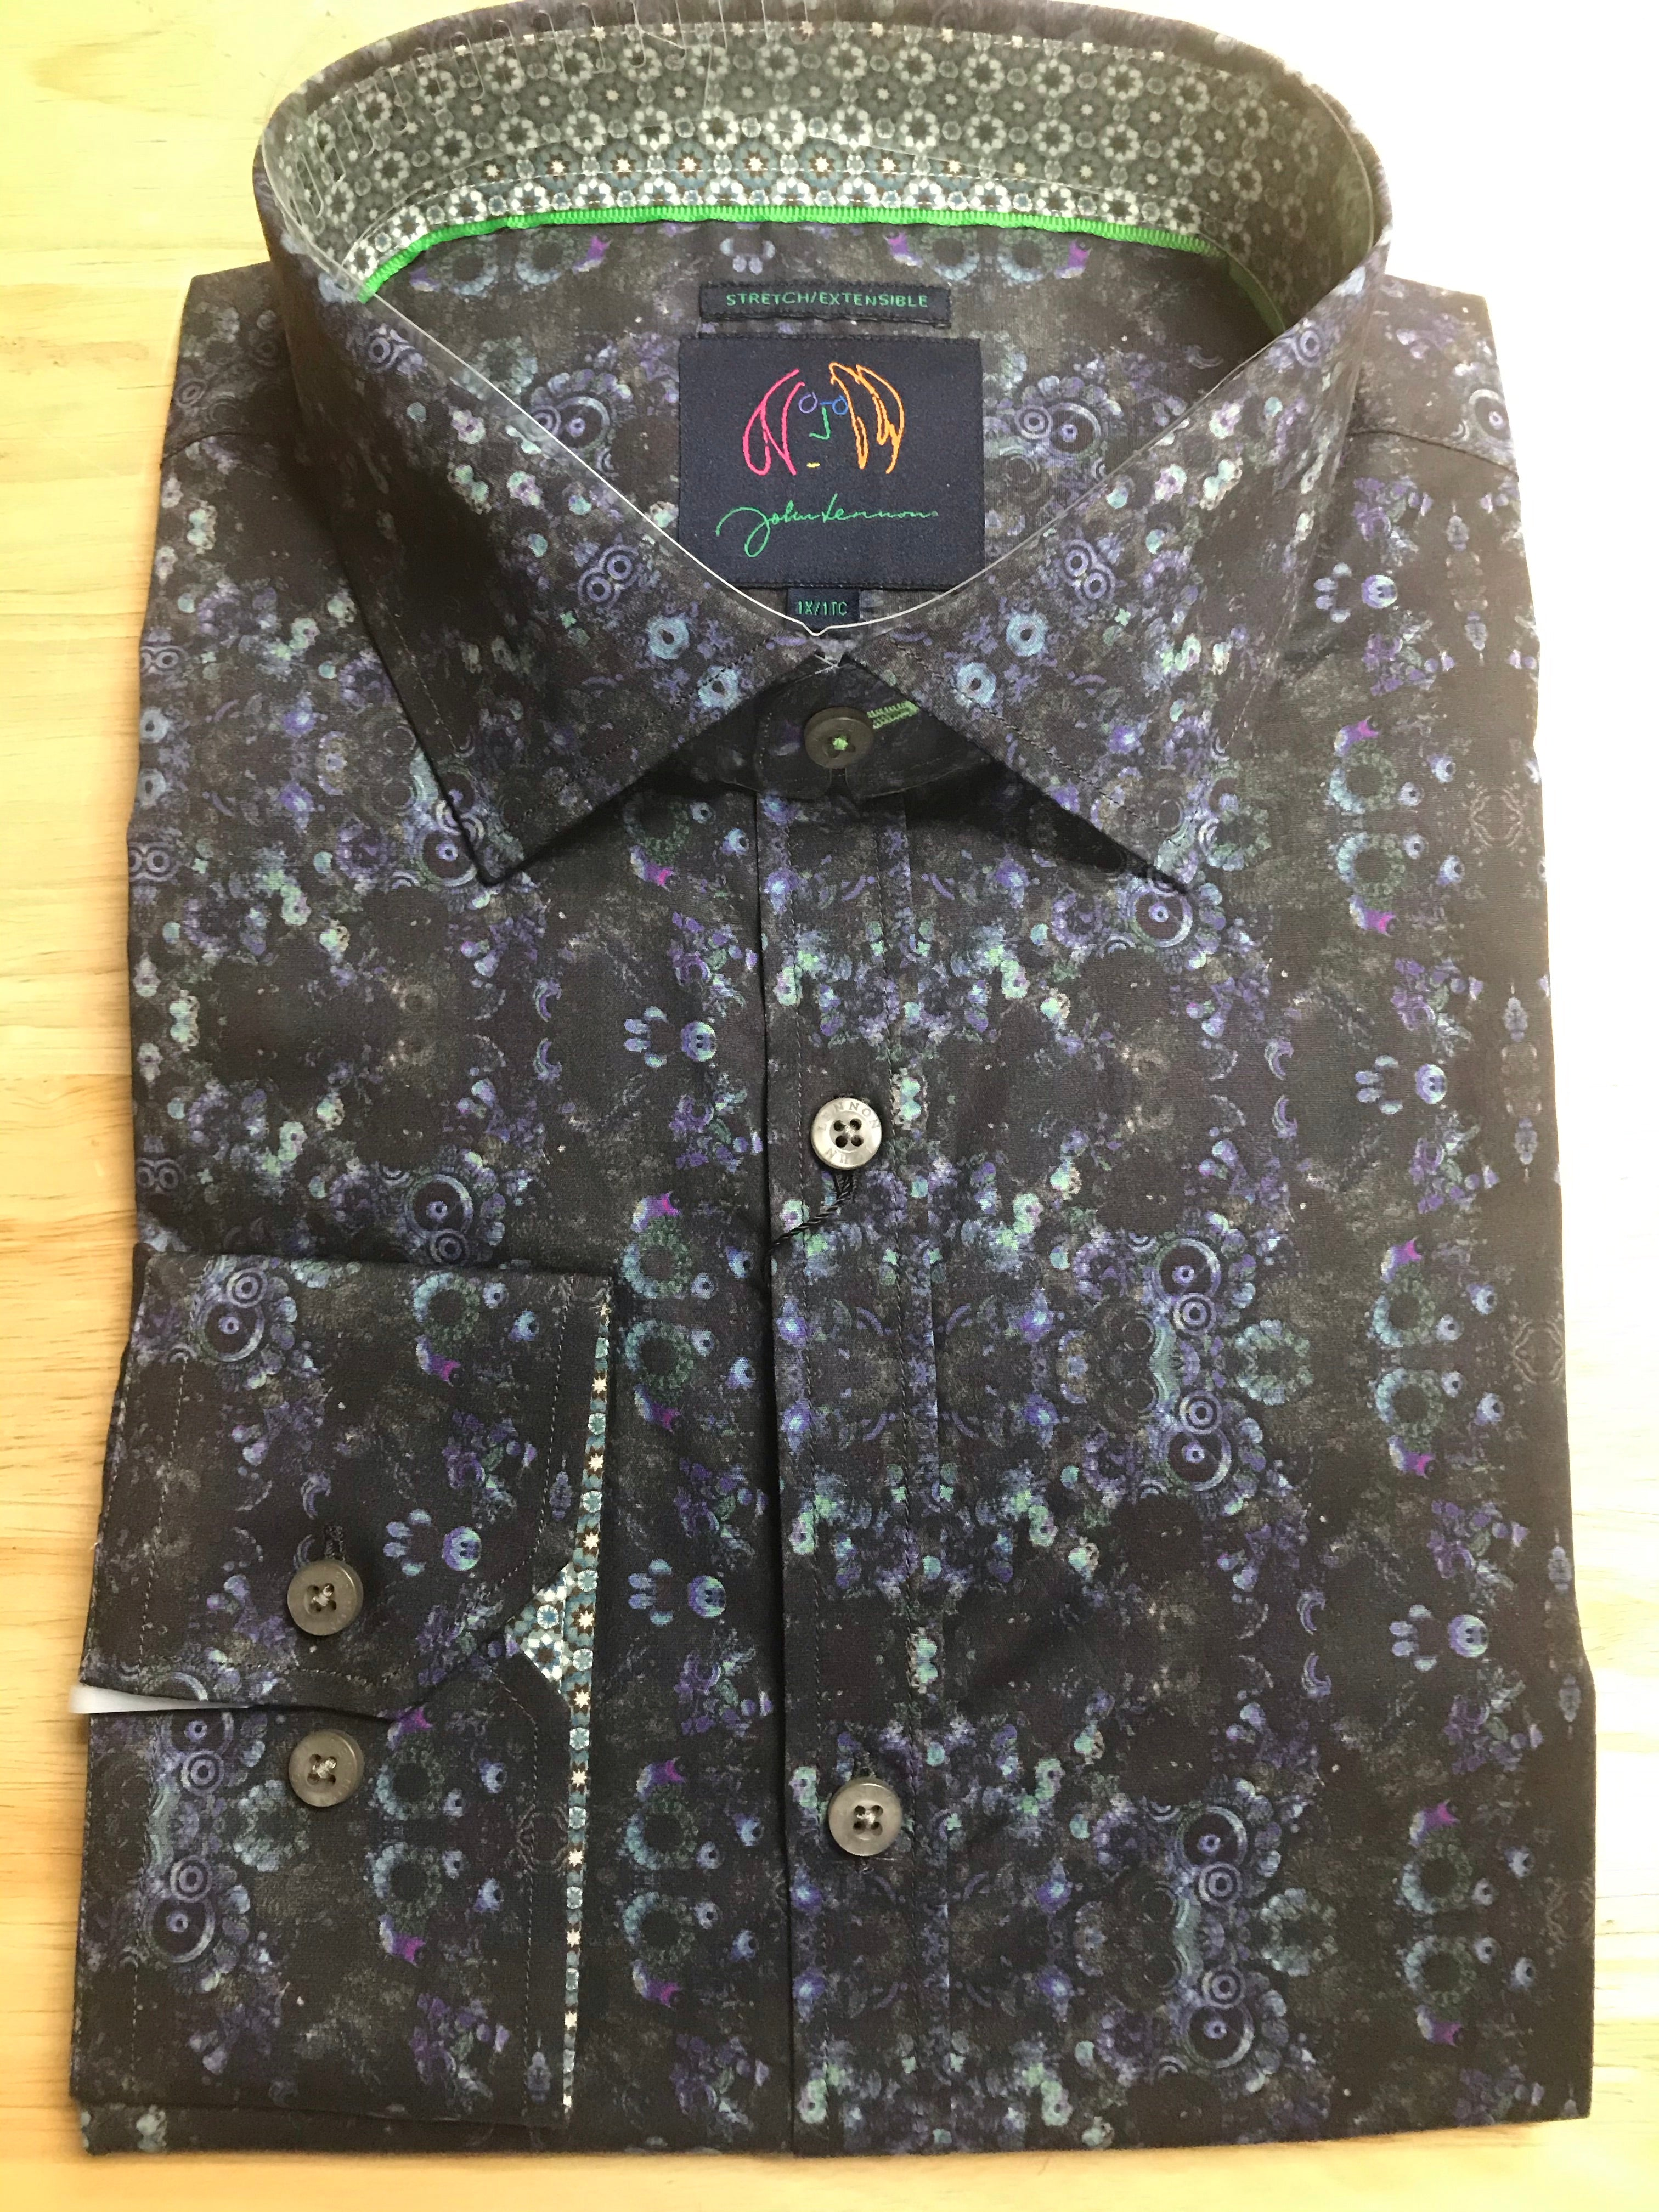 A throw back to the time of John Lennon and the Beetles.  Created from the John Lennon line and approved by Yoko Ono, this long sleeve sport shirt in a black and navy geo print on a Cotton Stretch Fabric is just plain cool. at Lil Johns Big and Tall size 1xl 2xl 3xl and 4xl